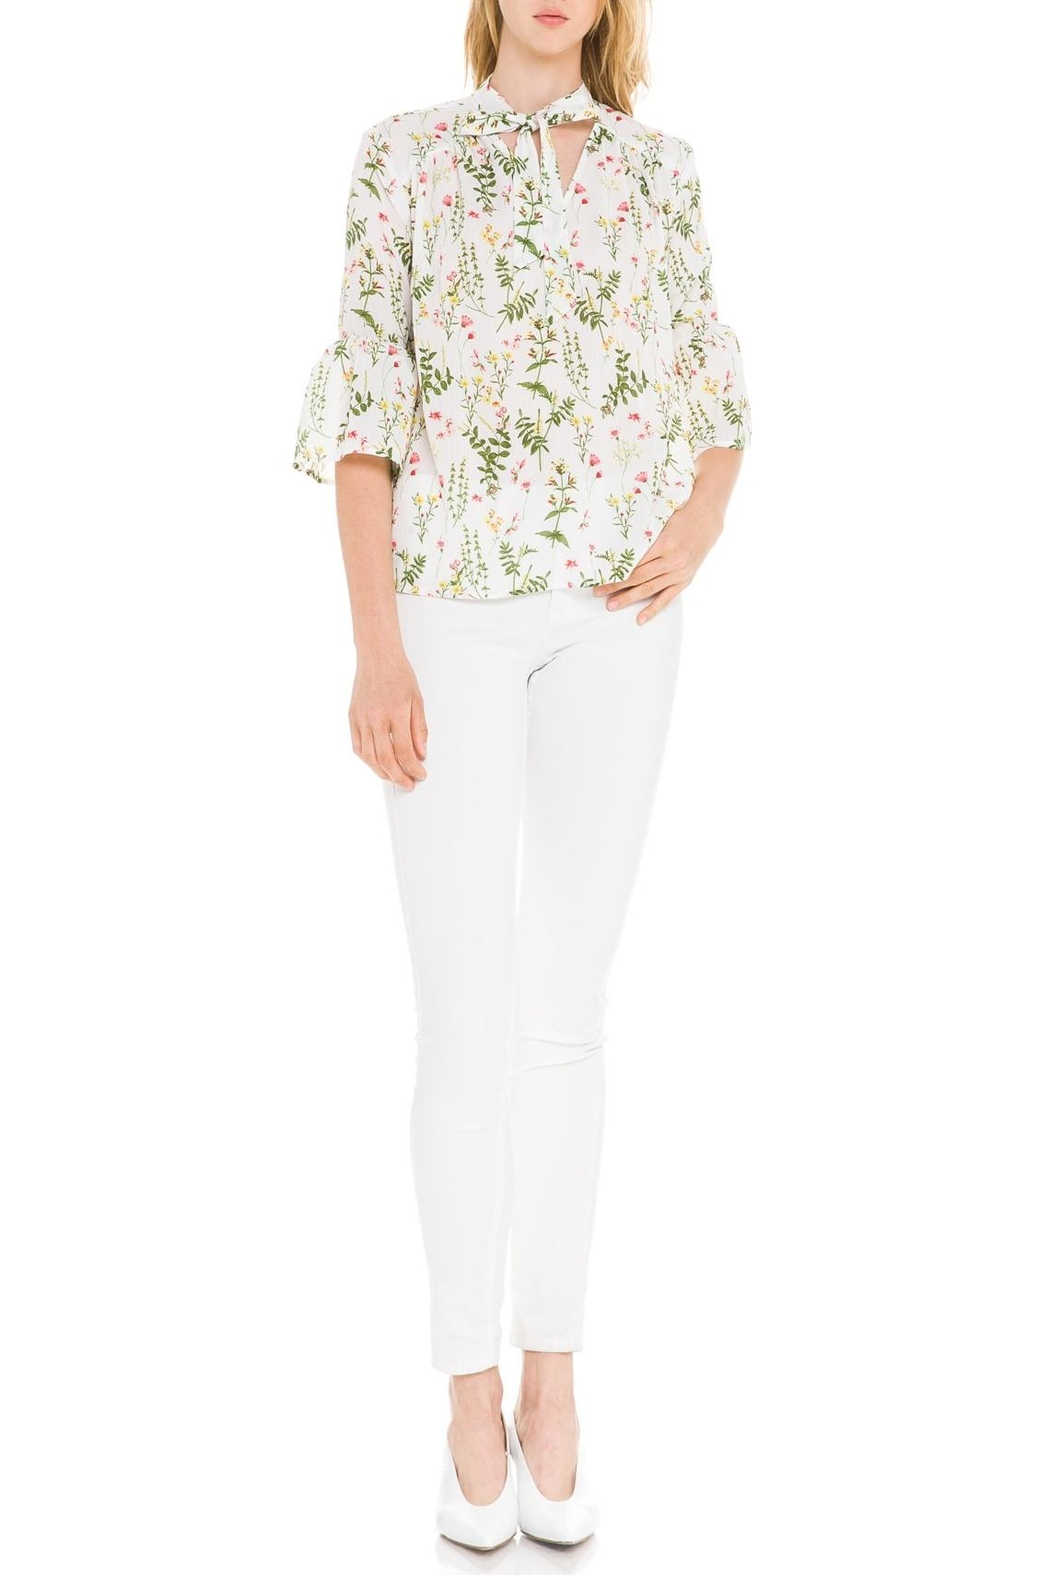 After Market Garden Party Blouse - Front Full Image